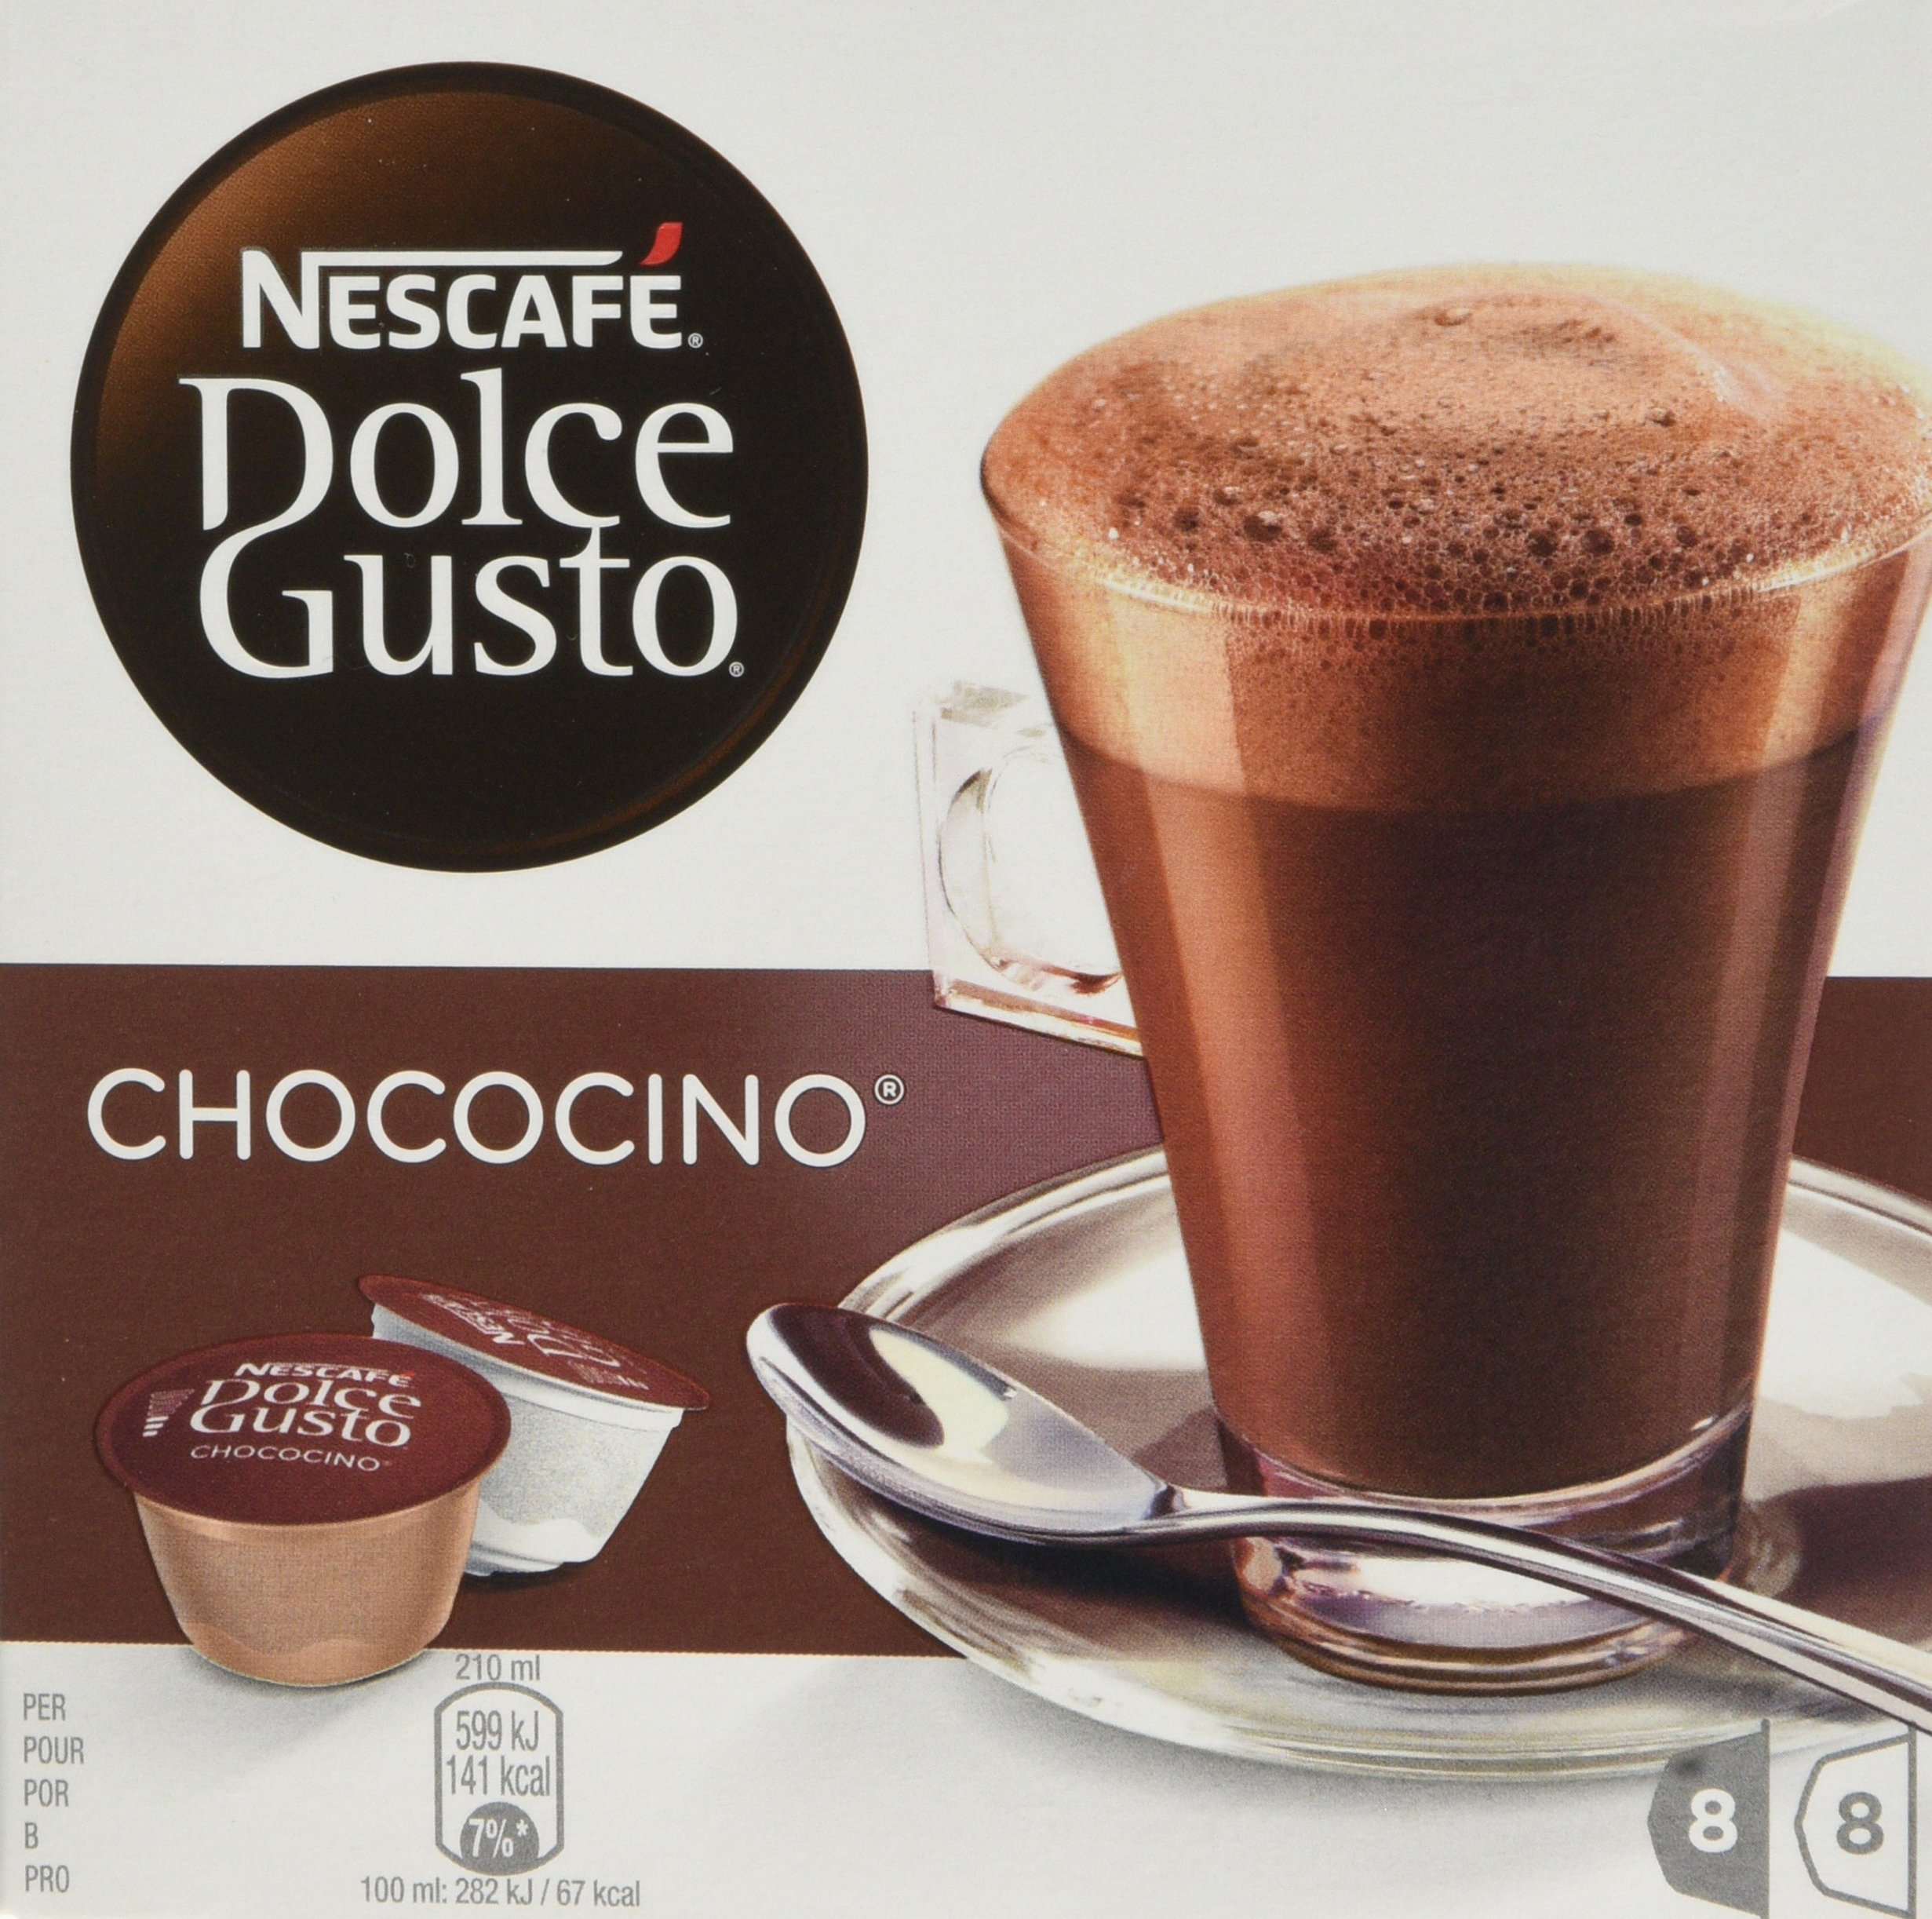 Nescafé Dolce Gusto Chococino coffee pods and capsules (a vanilla coffee with aromas of fresh fruit and petals)